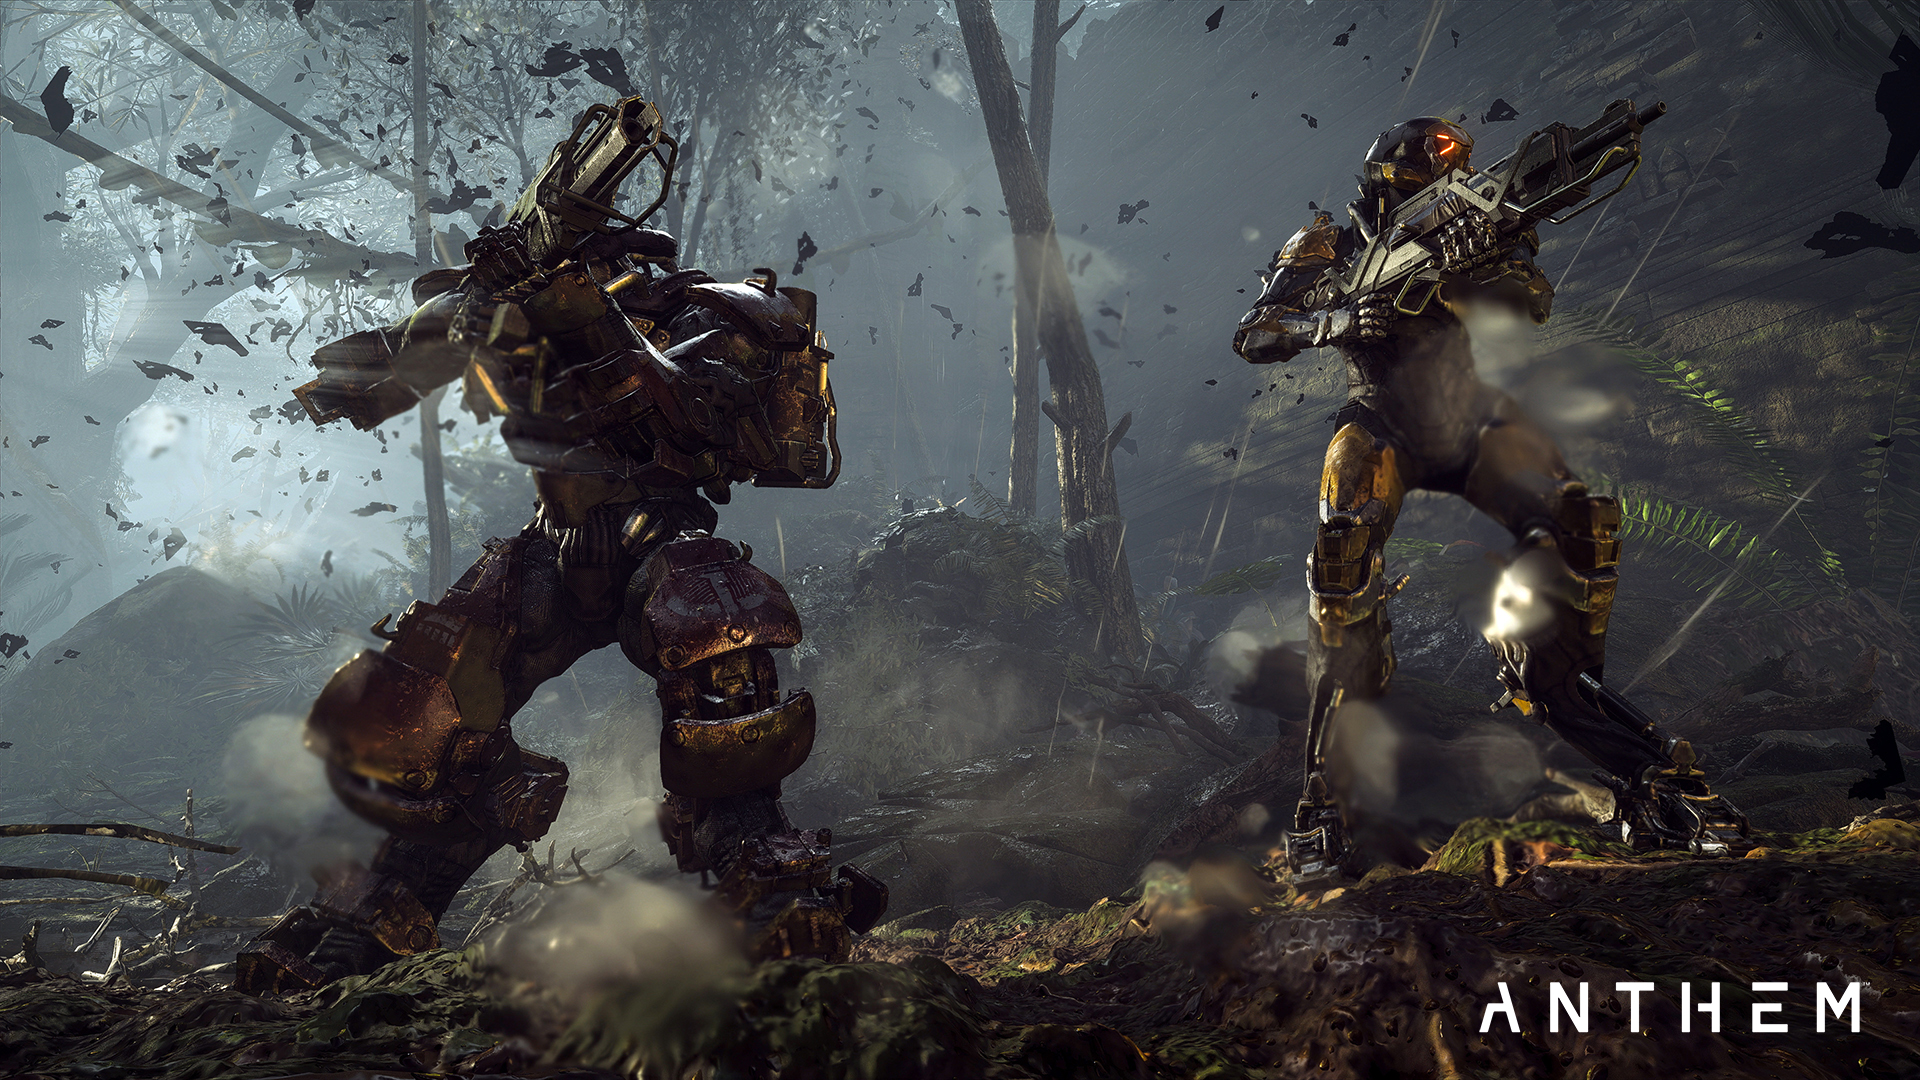 BioWare's Anthem and Toxicity